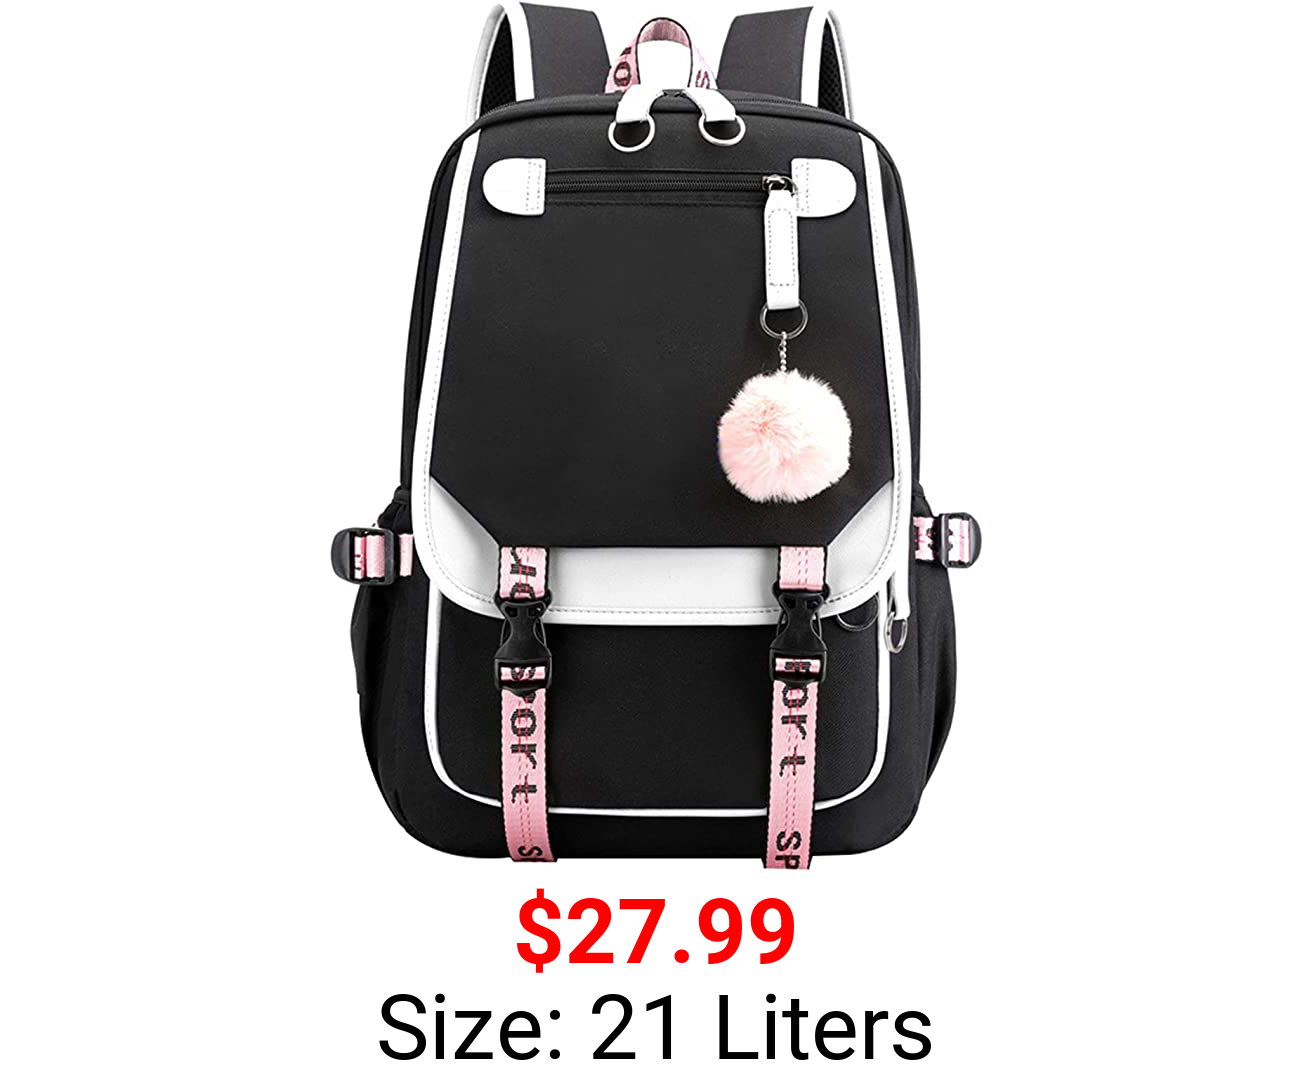 Teenage Girls' Backpack Middle School Students Bookbag Outdoor Daypack with USB Charge Port (4# White Black,21 Liters)